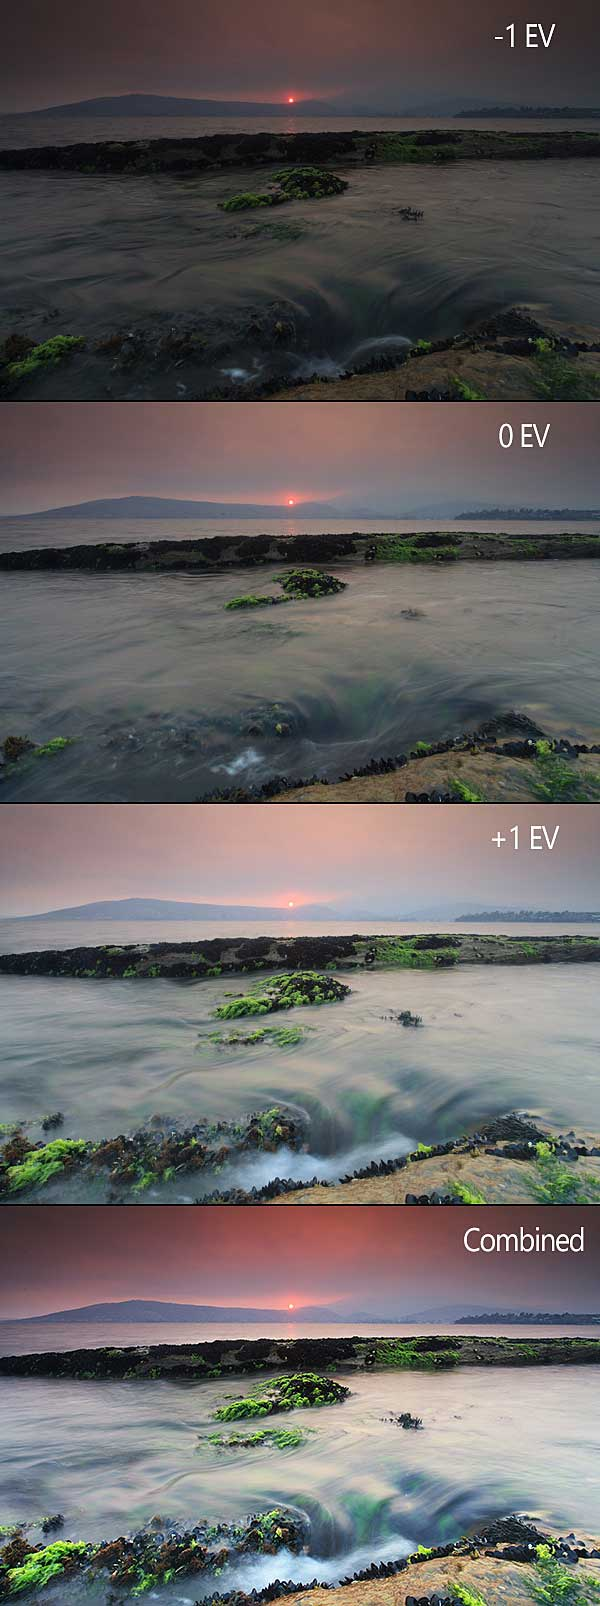 Another final image with the 3 auto exposure images and final image